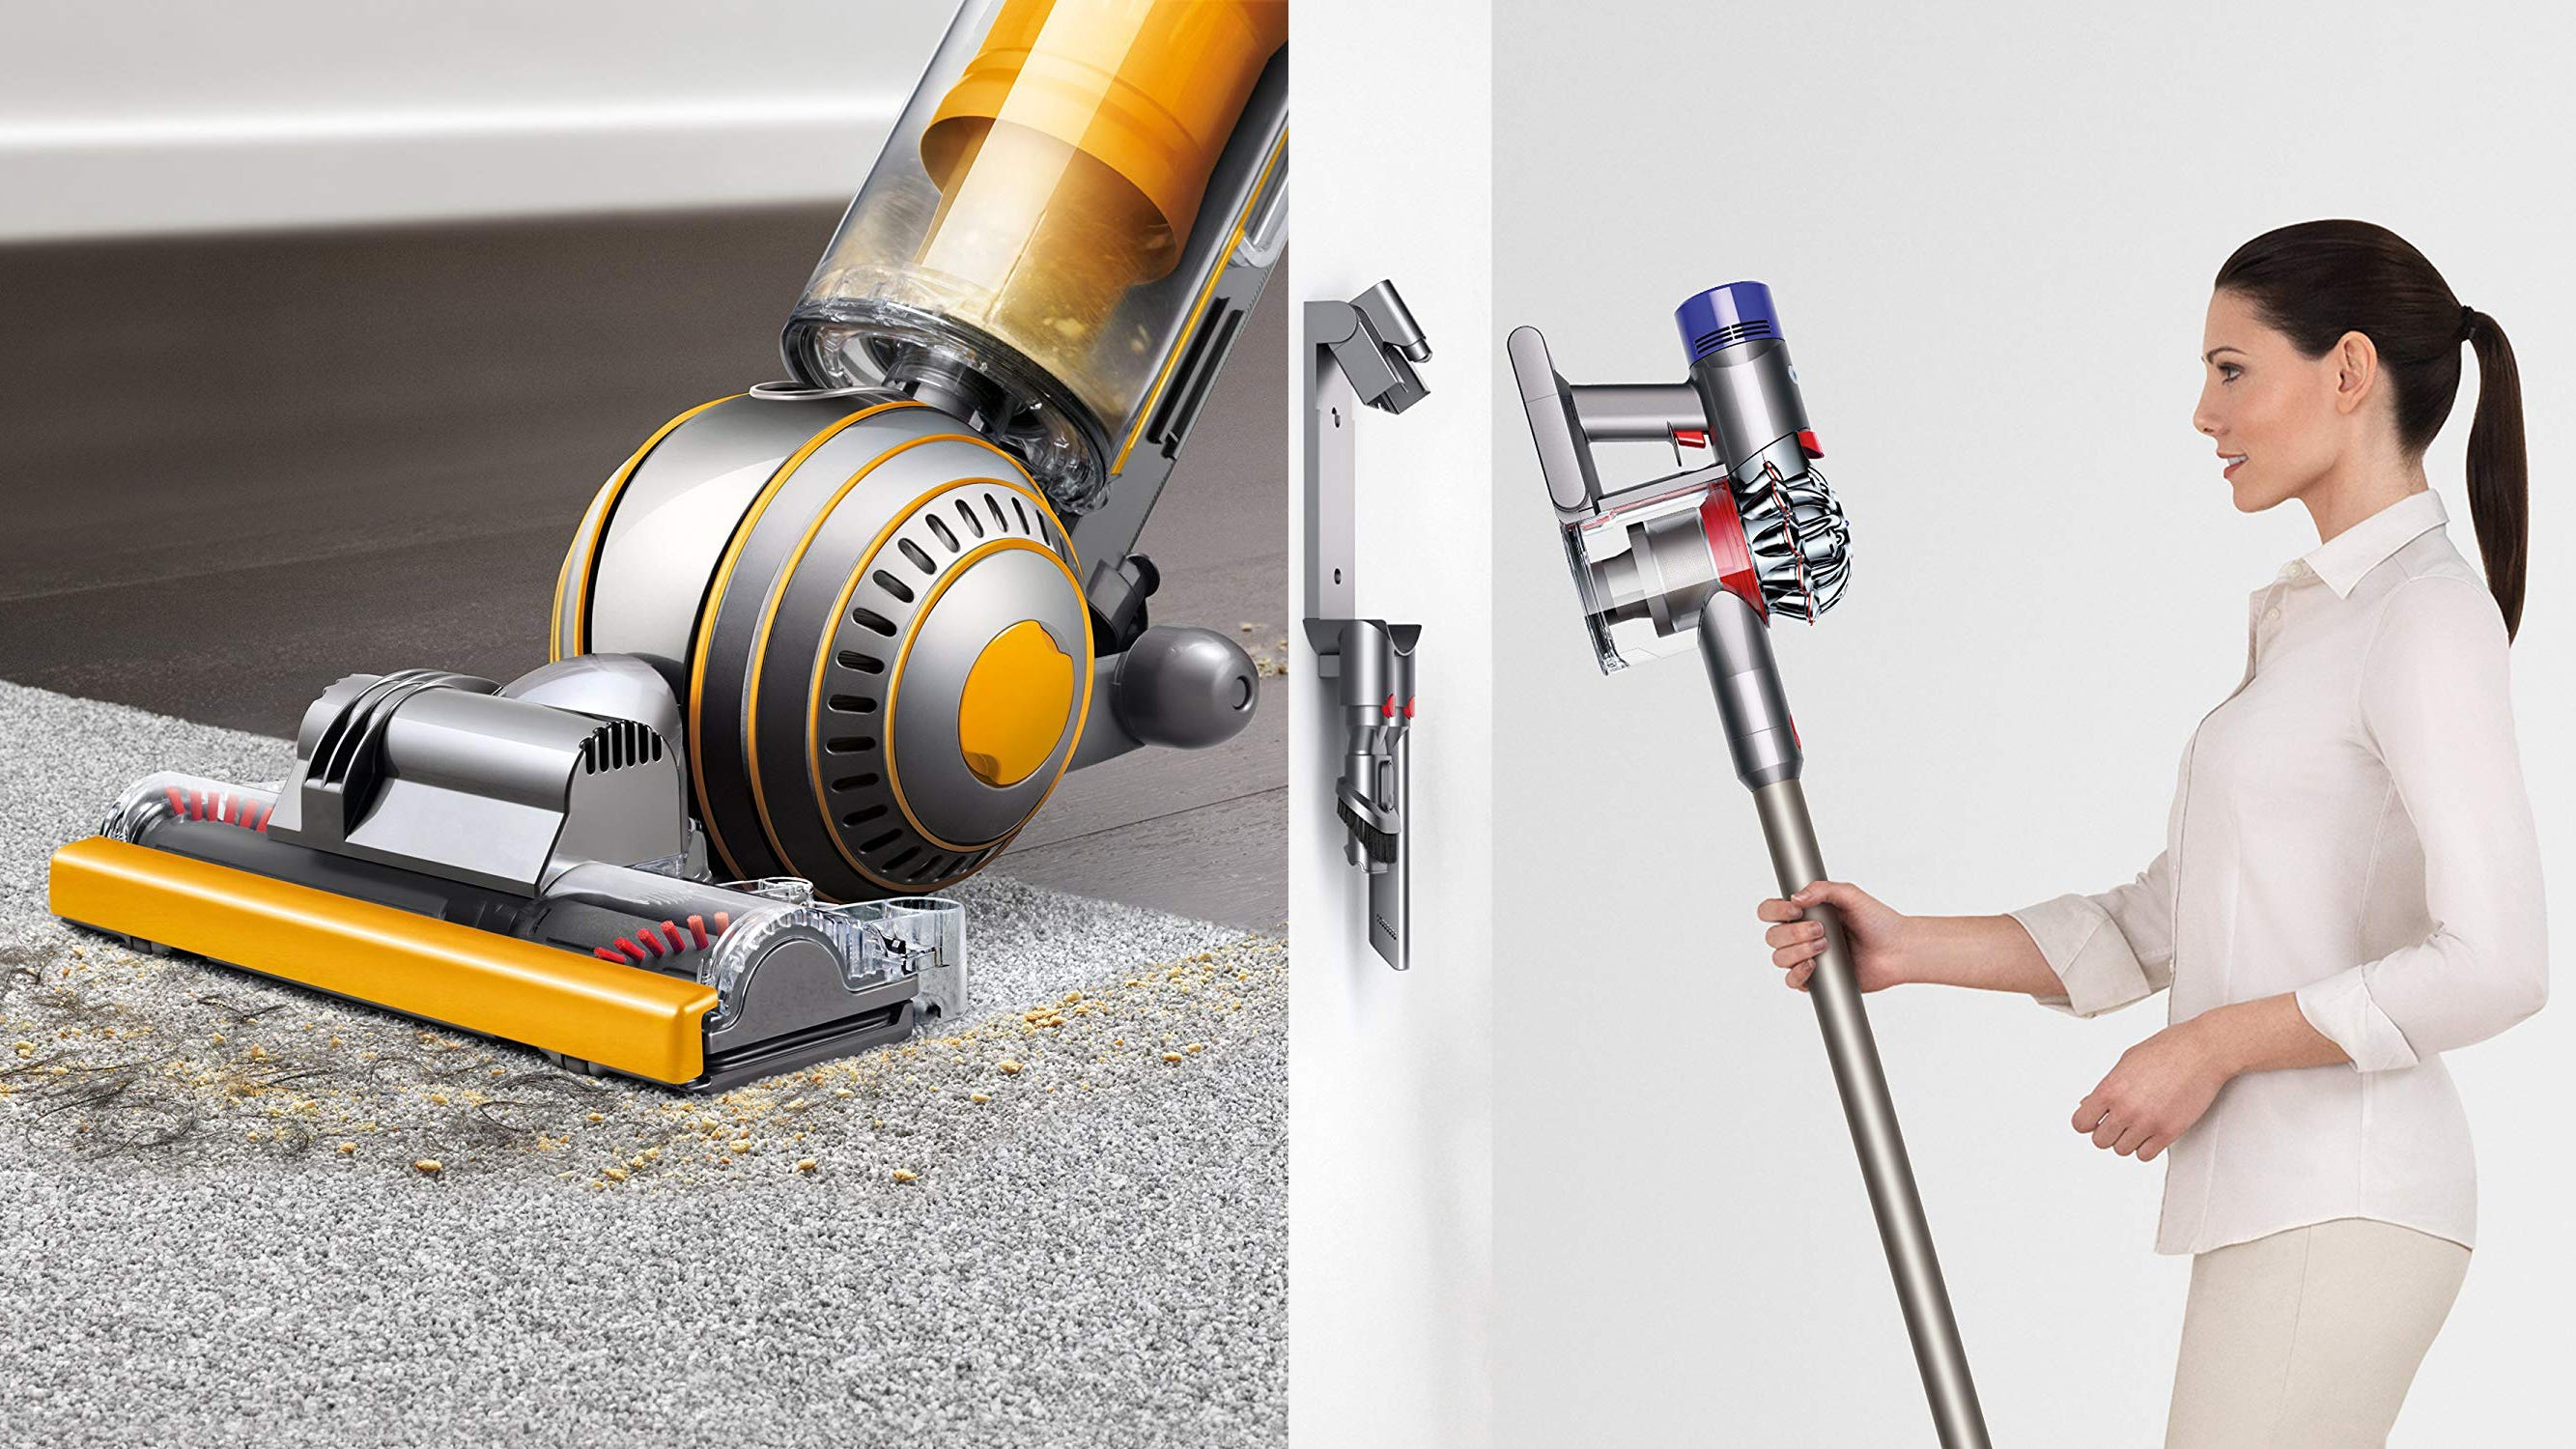 Dyson vacuums are on sale on Woot for today only